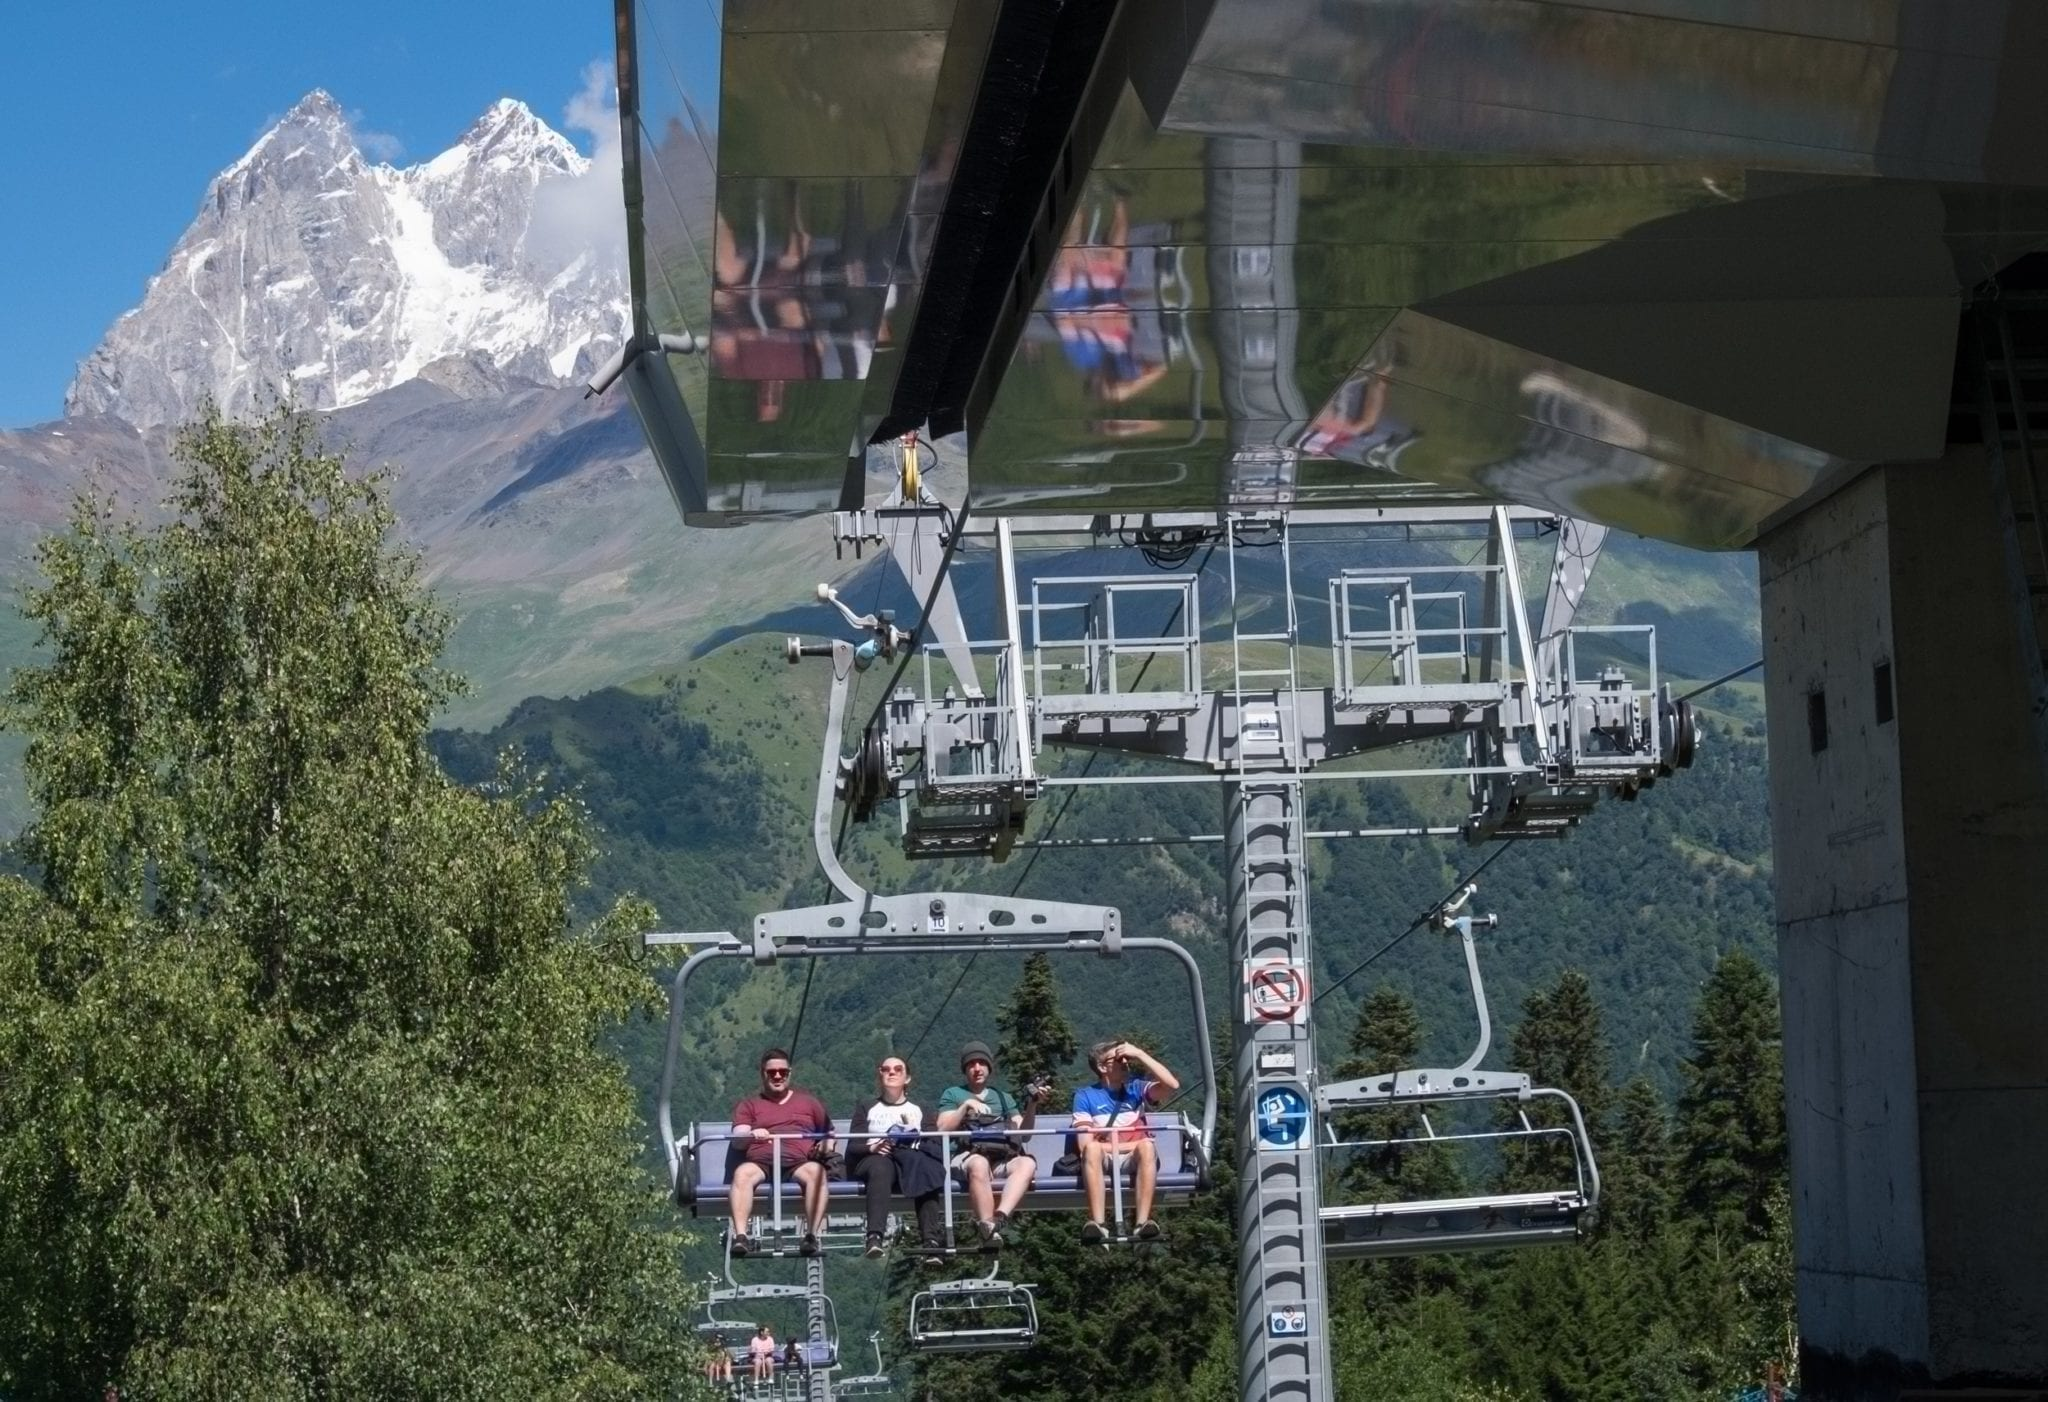 People ride a cable car as a mountain rises up behind them in front of a blue sky.